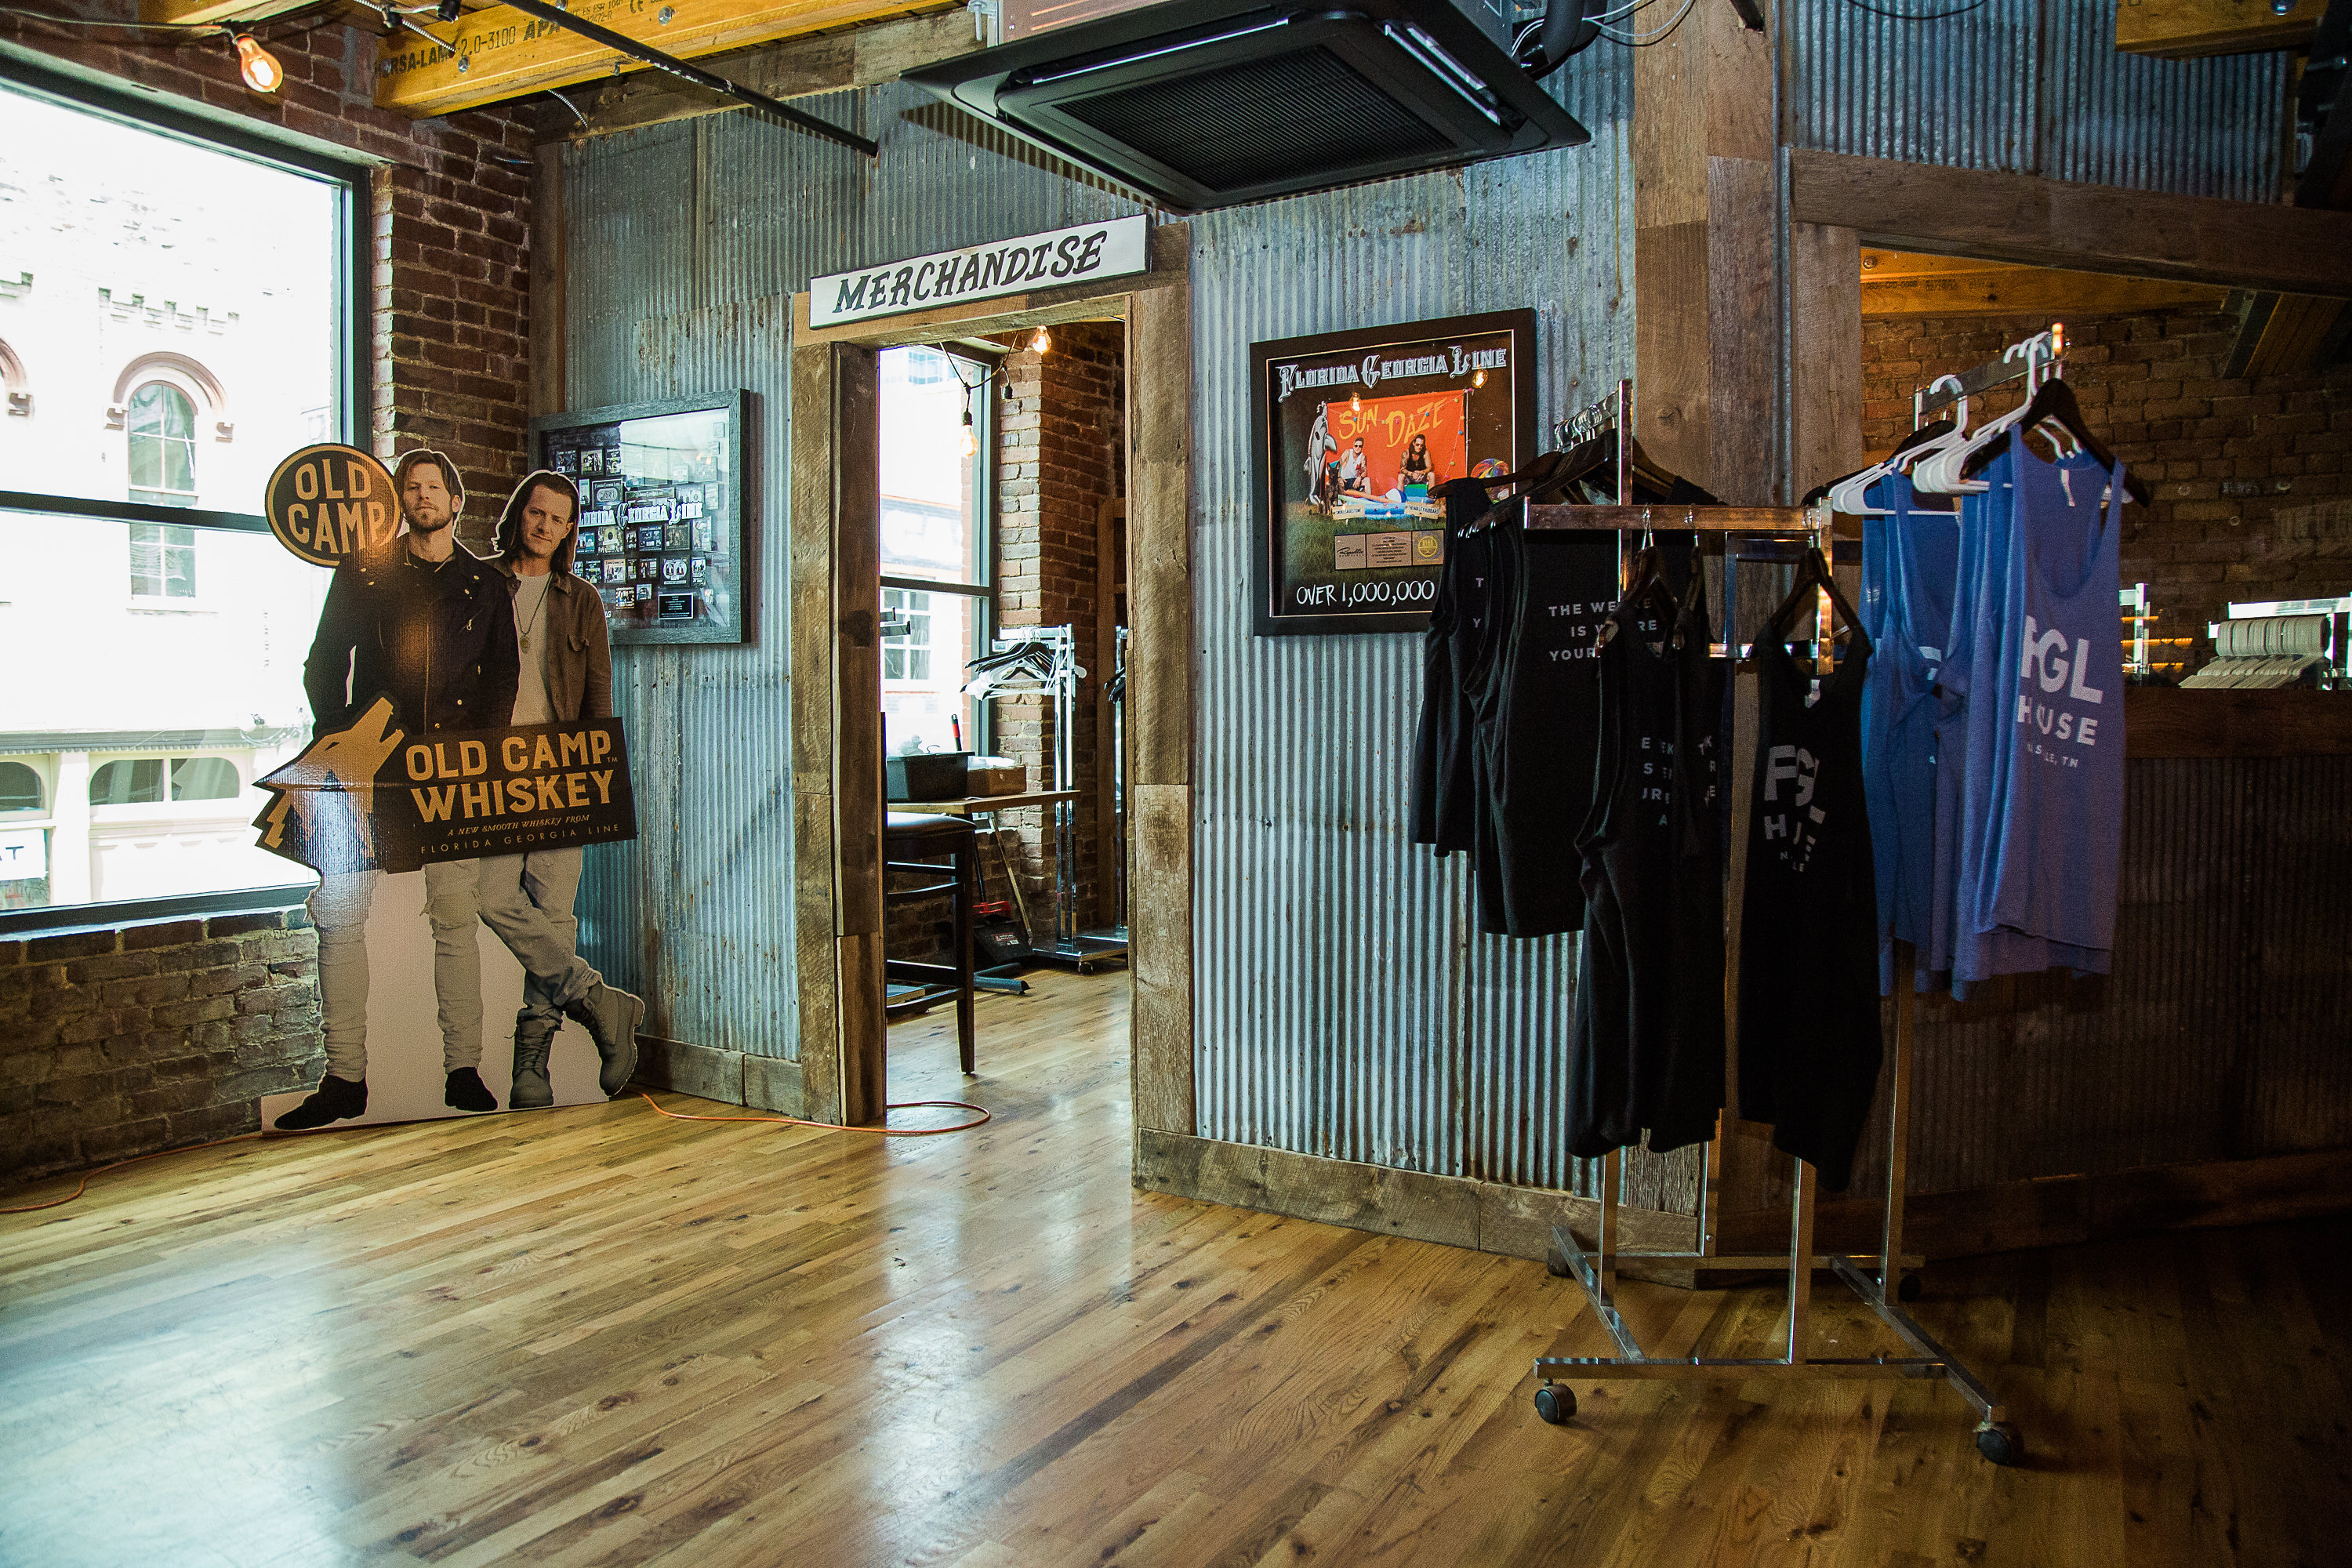 FGL House Music City Bar and Merch